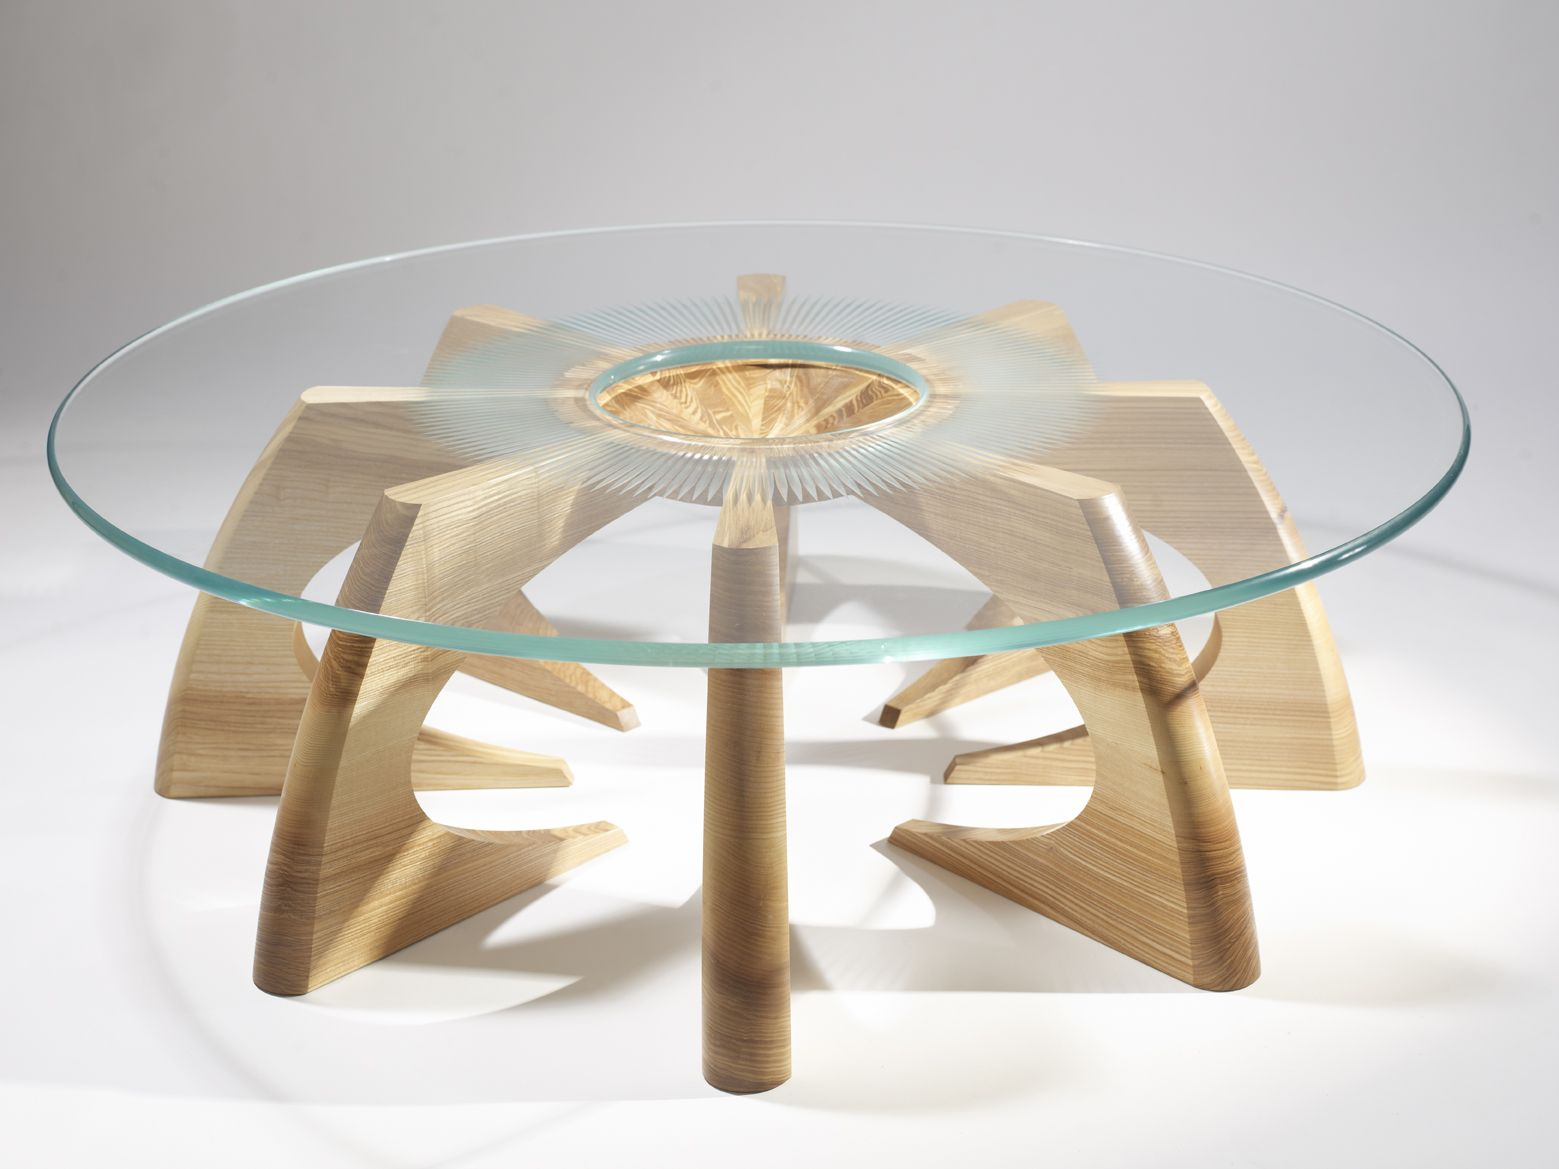 Wood table designs free wood furniture plans cnc for Wood table top designs